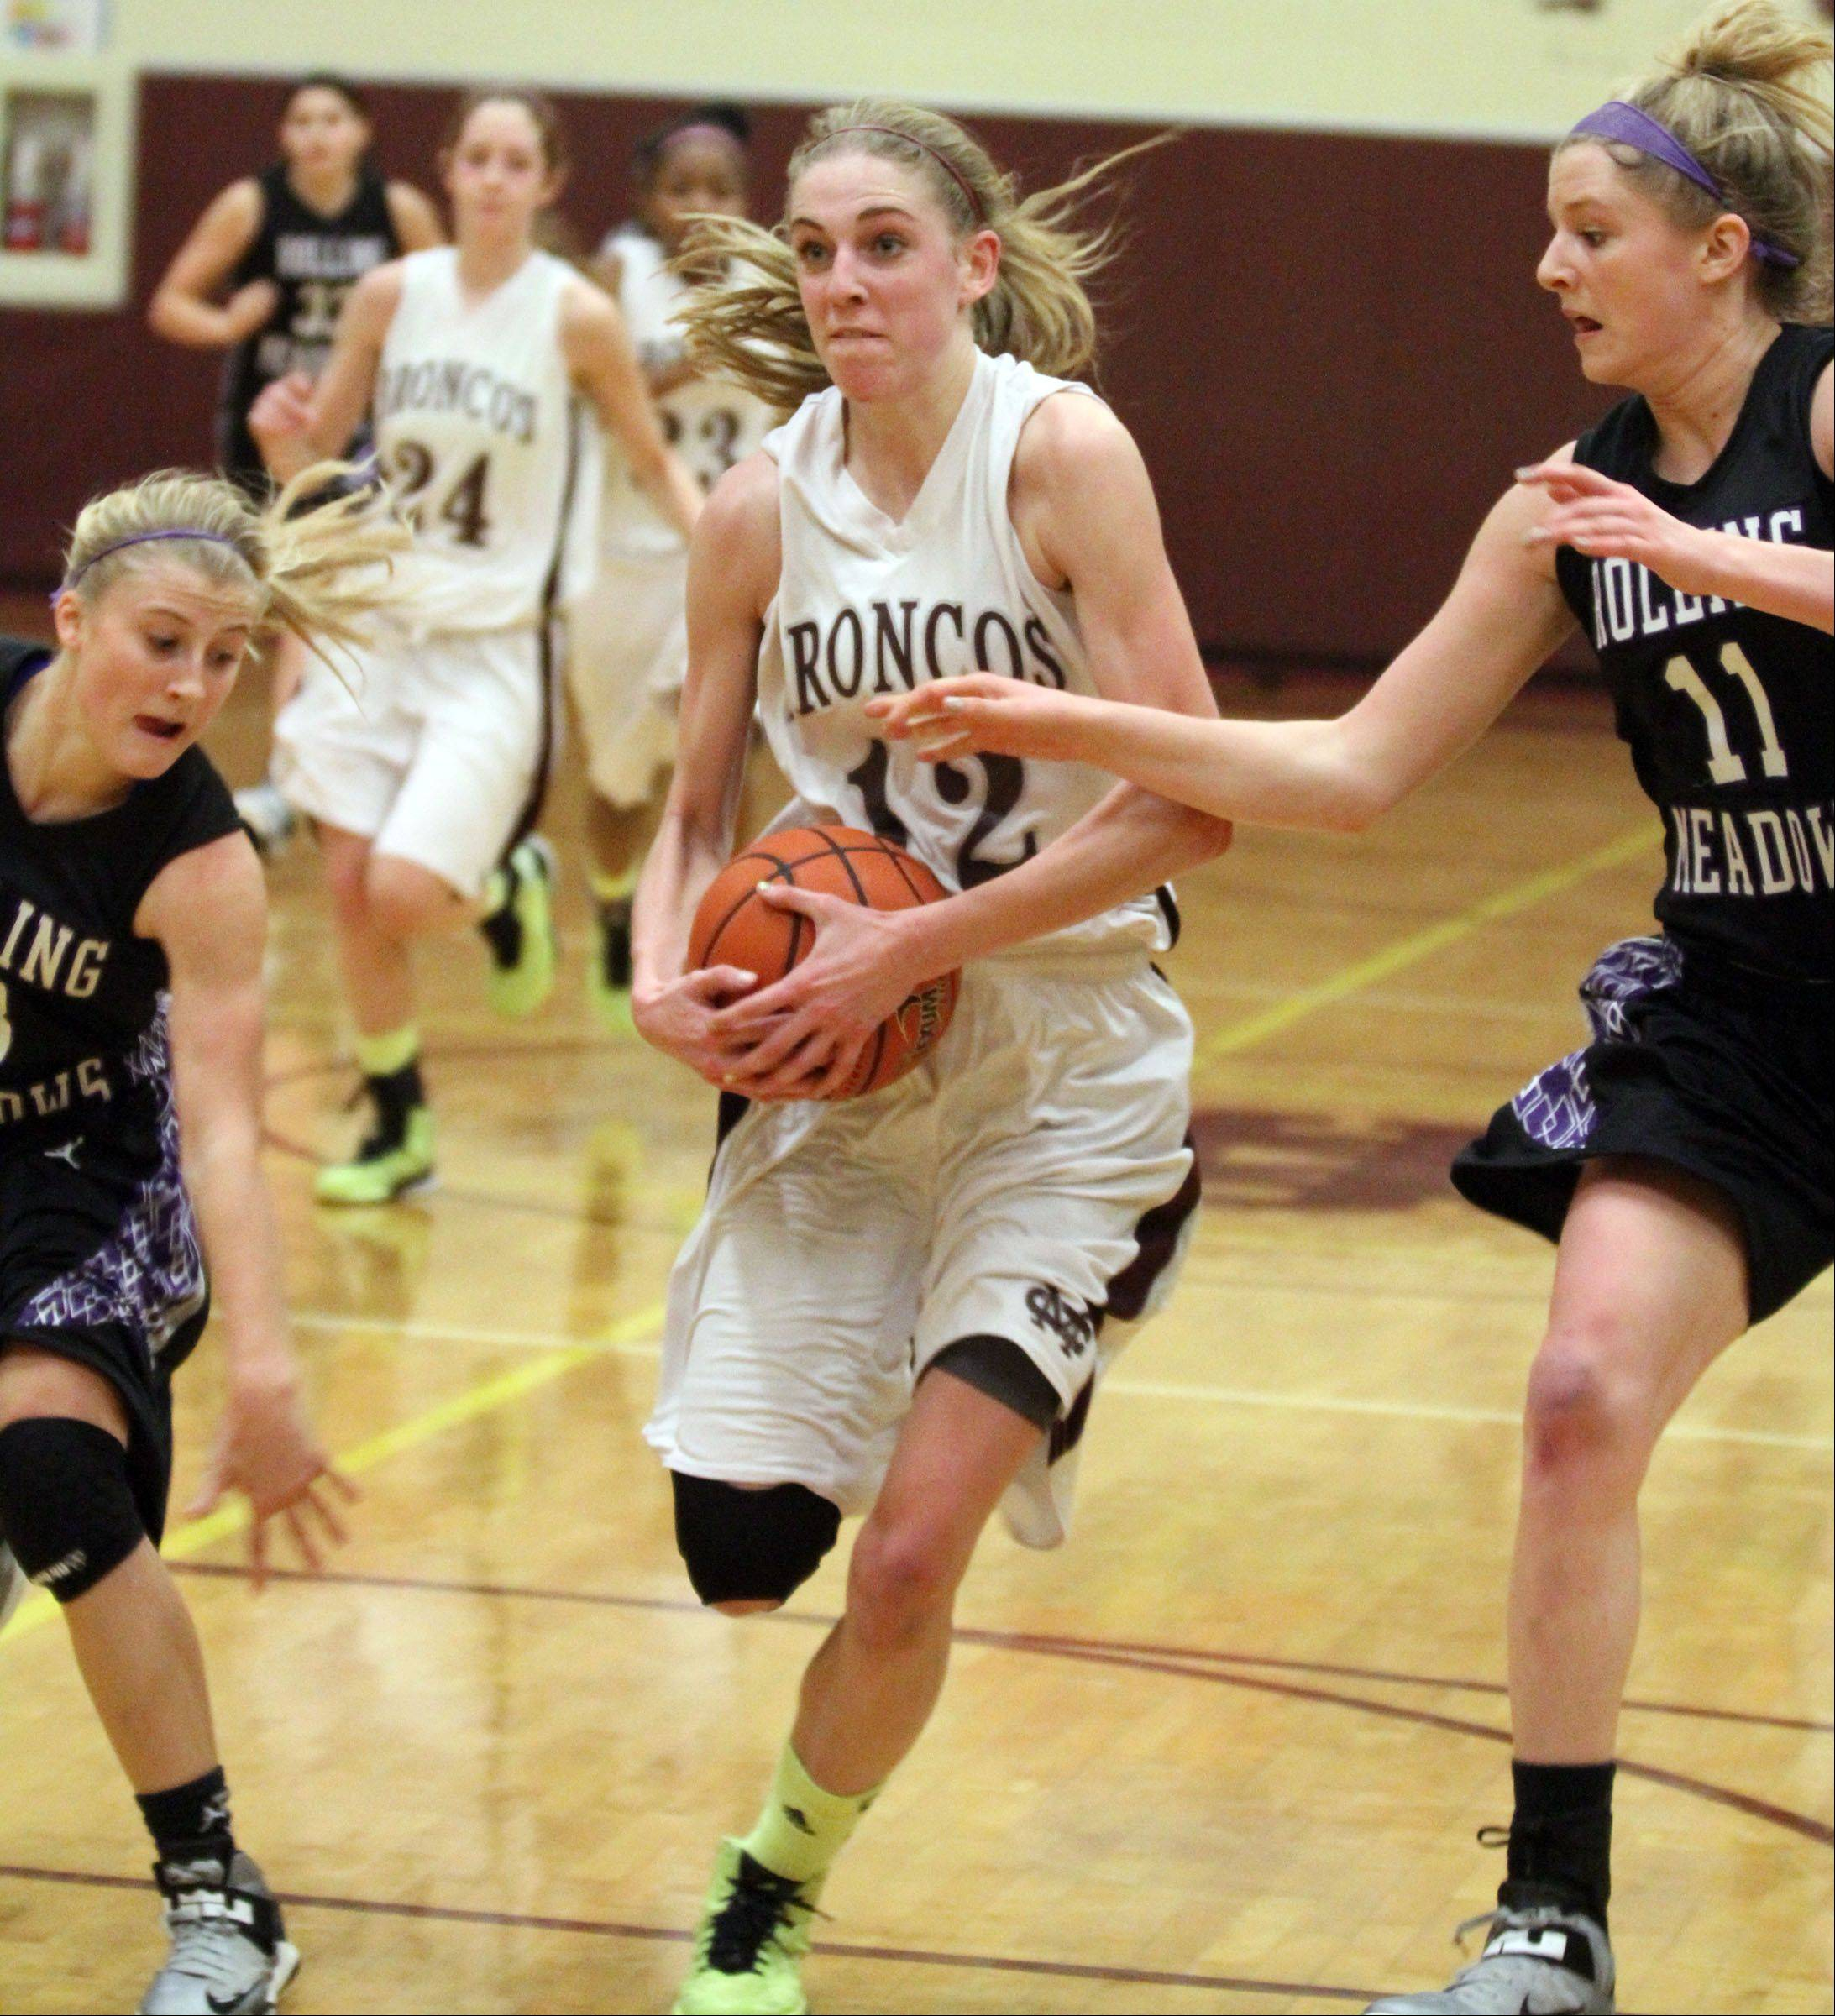 Images from the Montini vs. Rolling Meadows girls championship basketball game on Saturday, December 29th, in Lombard.